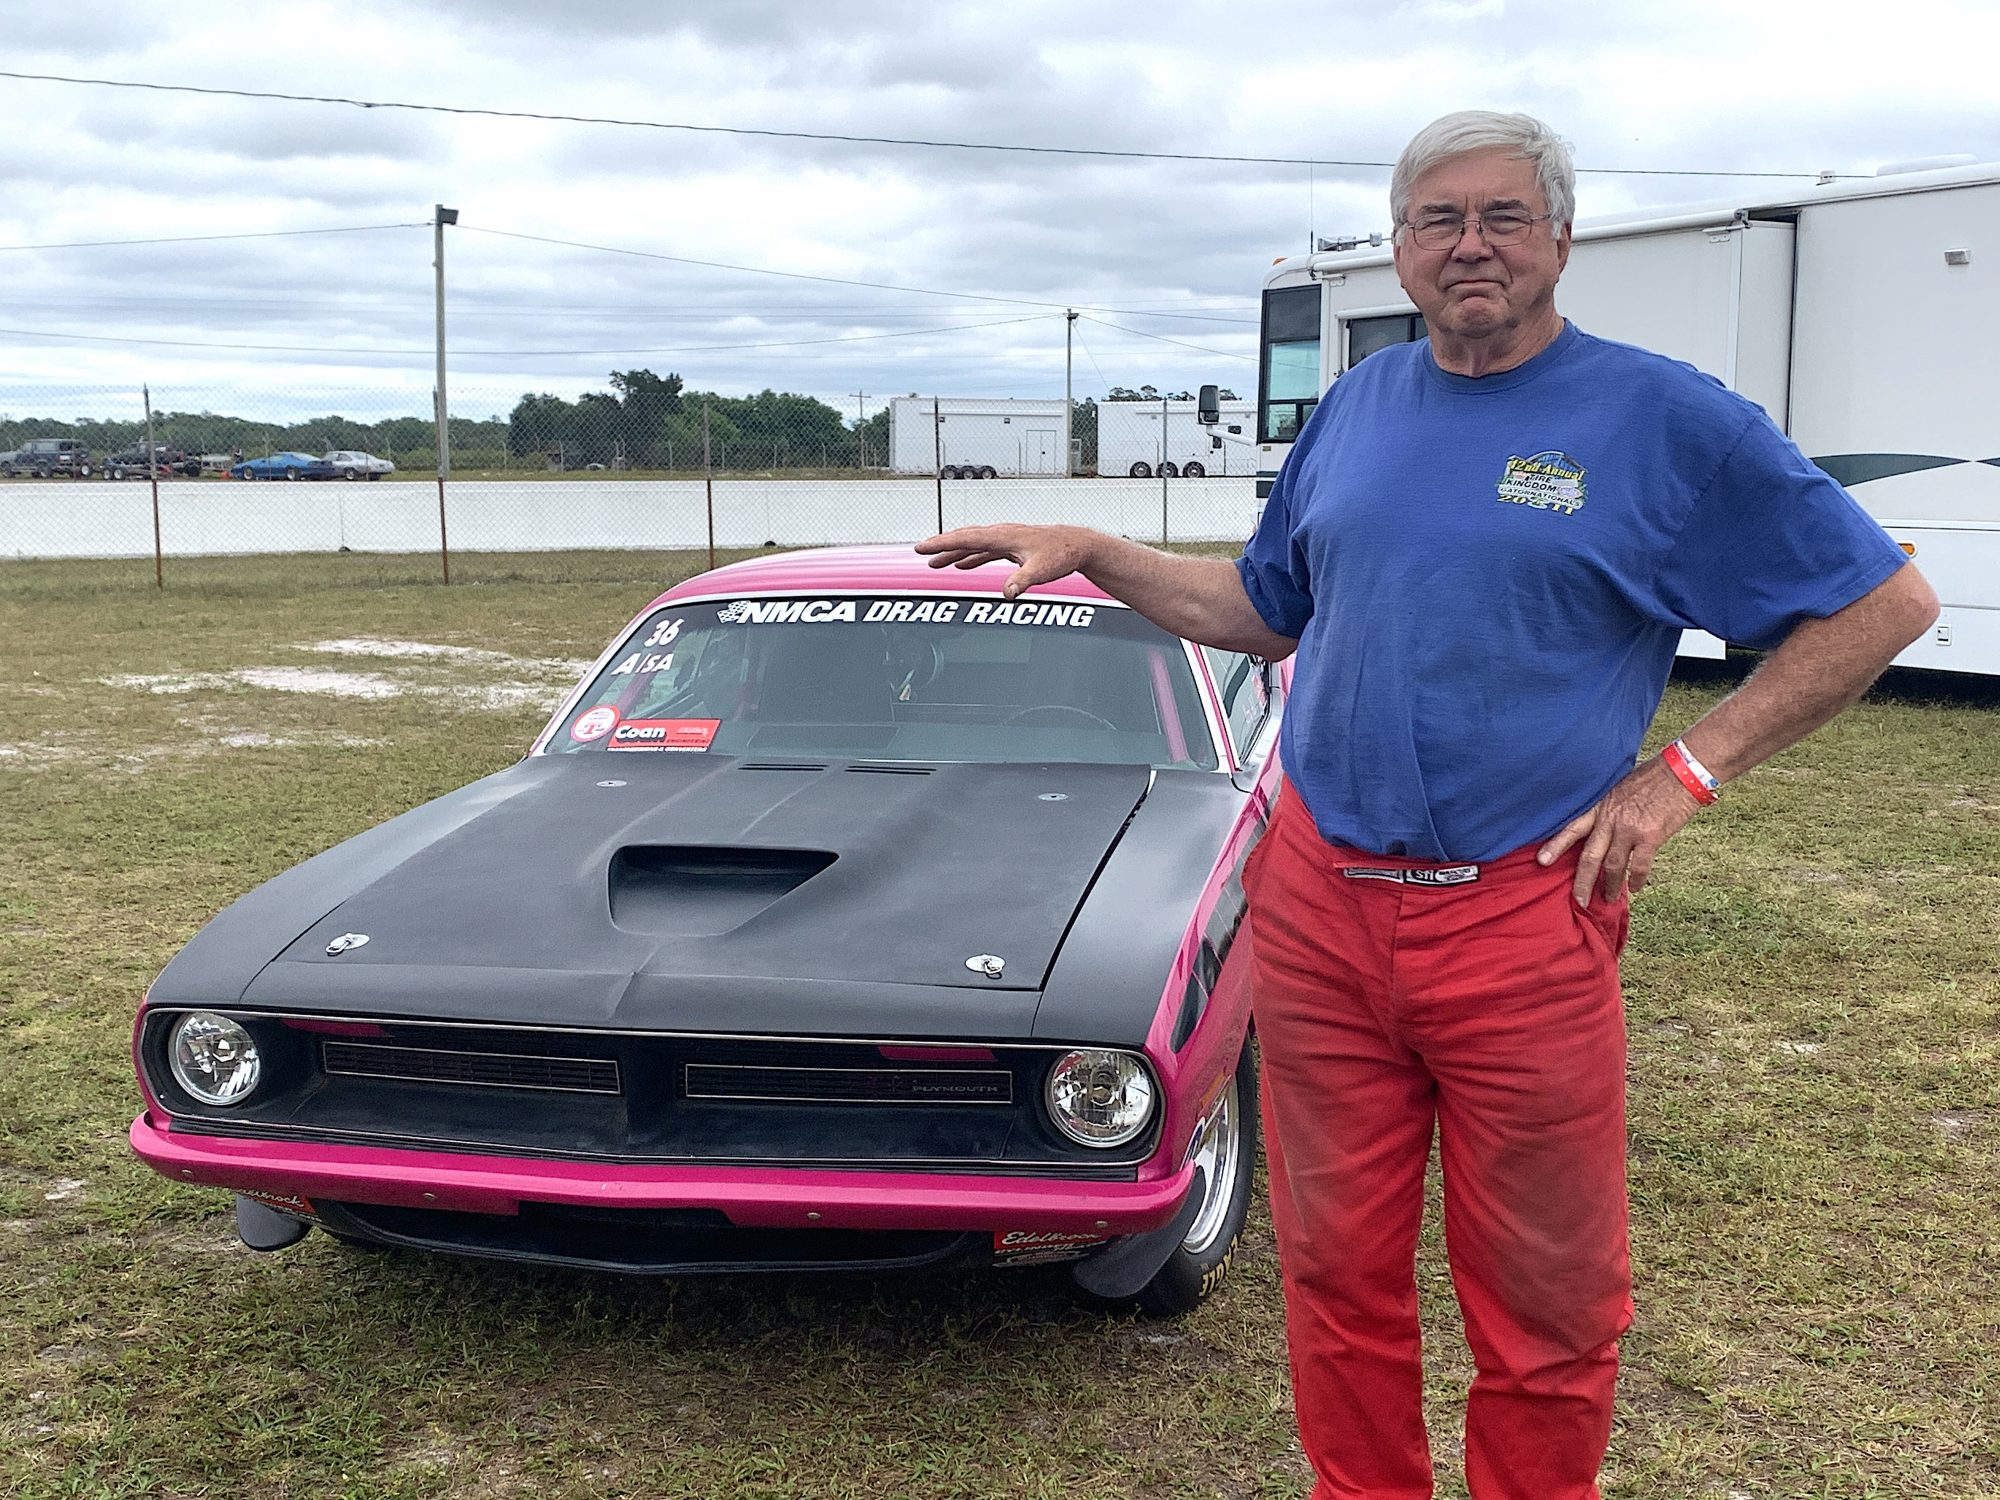 Larry Hill posing with his drag car